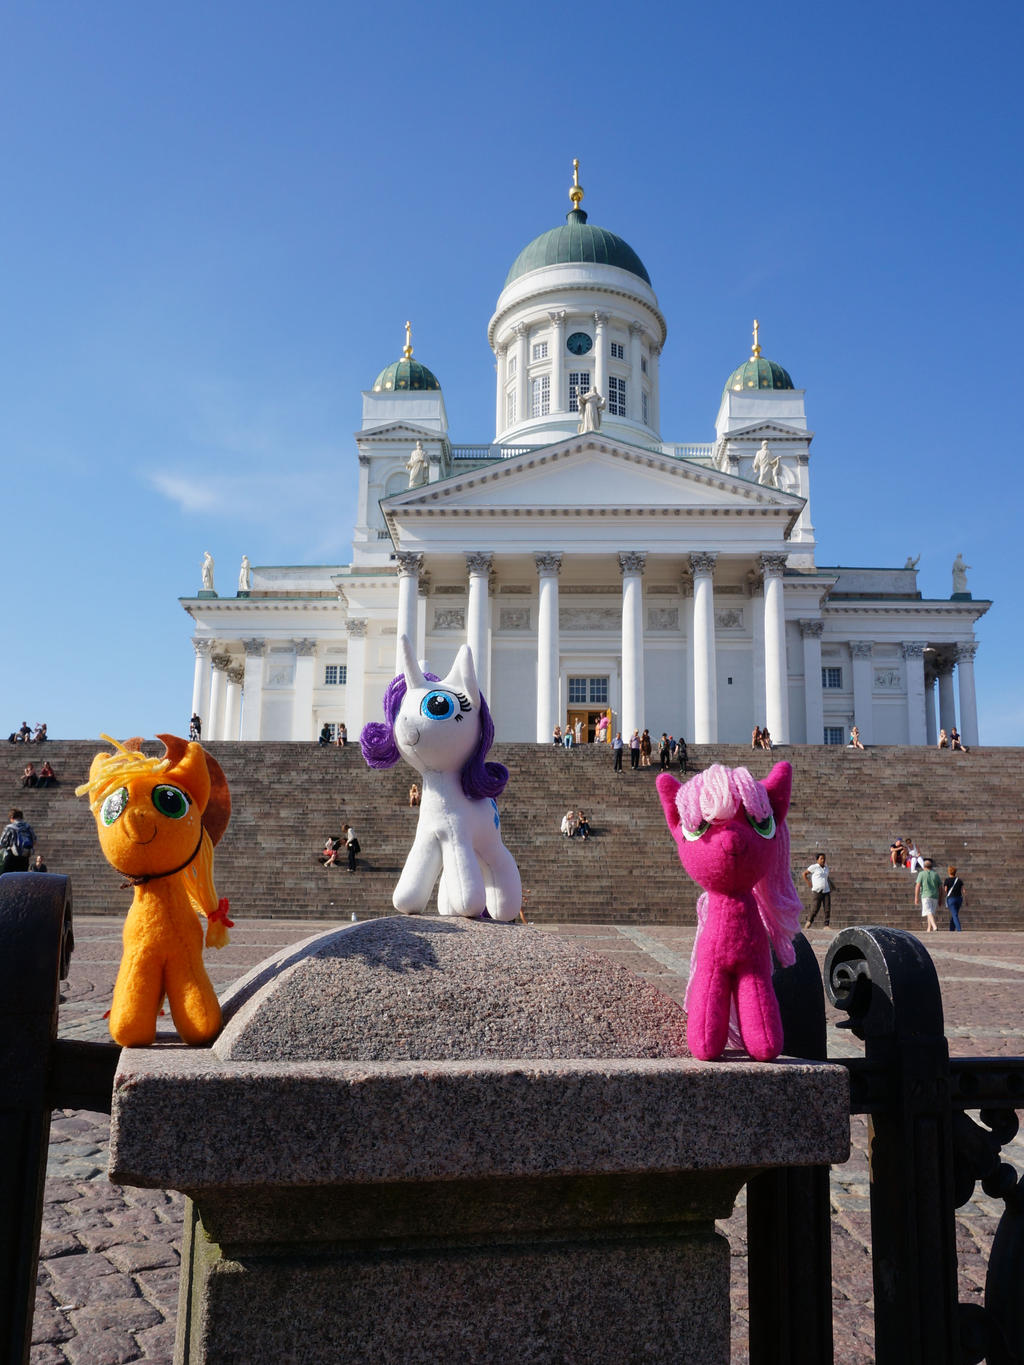 Ponies at Helsinki Cathedral by Cabraloca